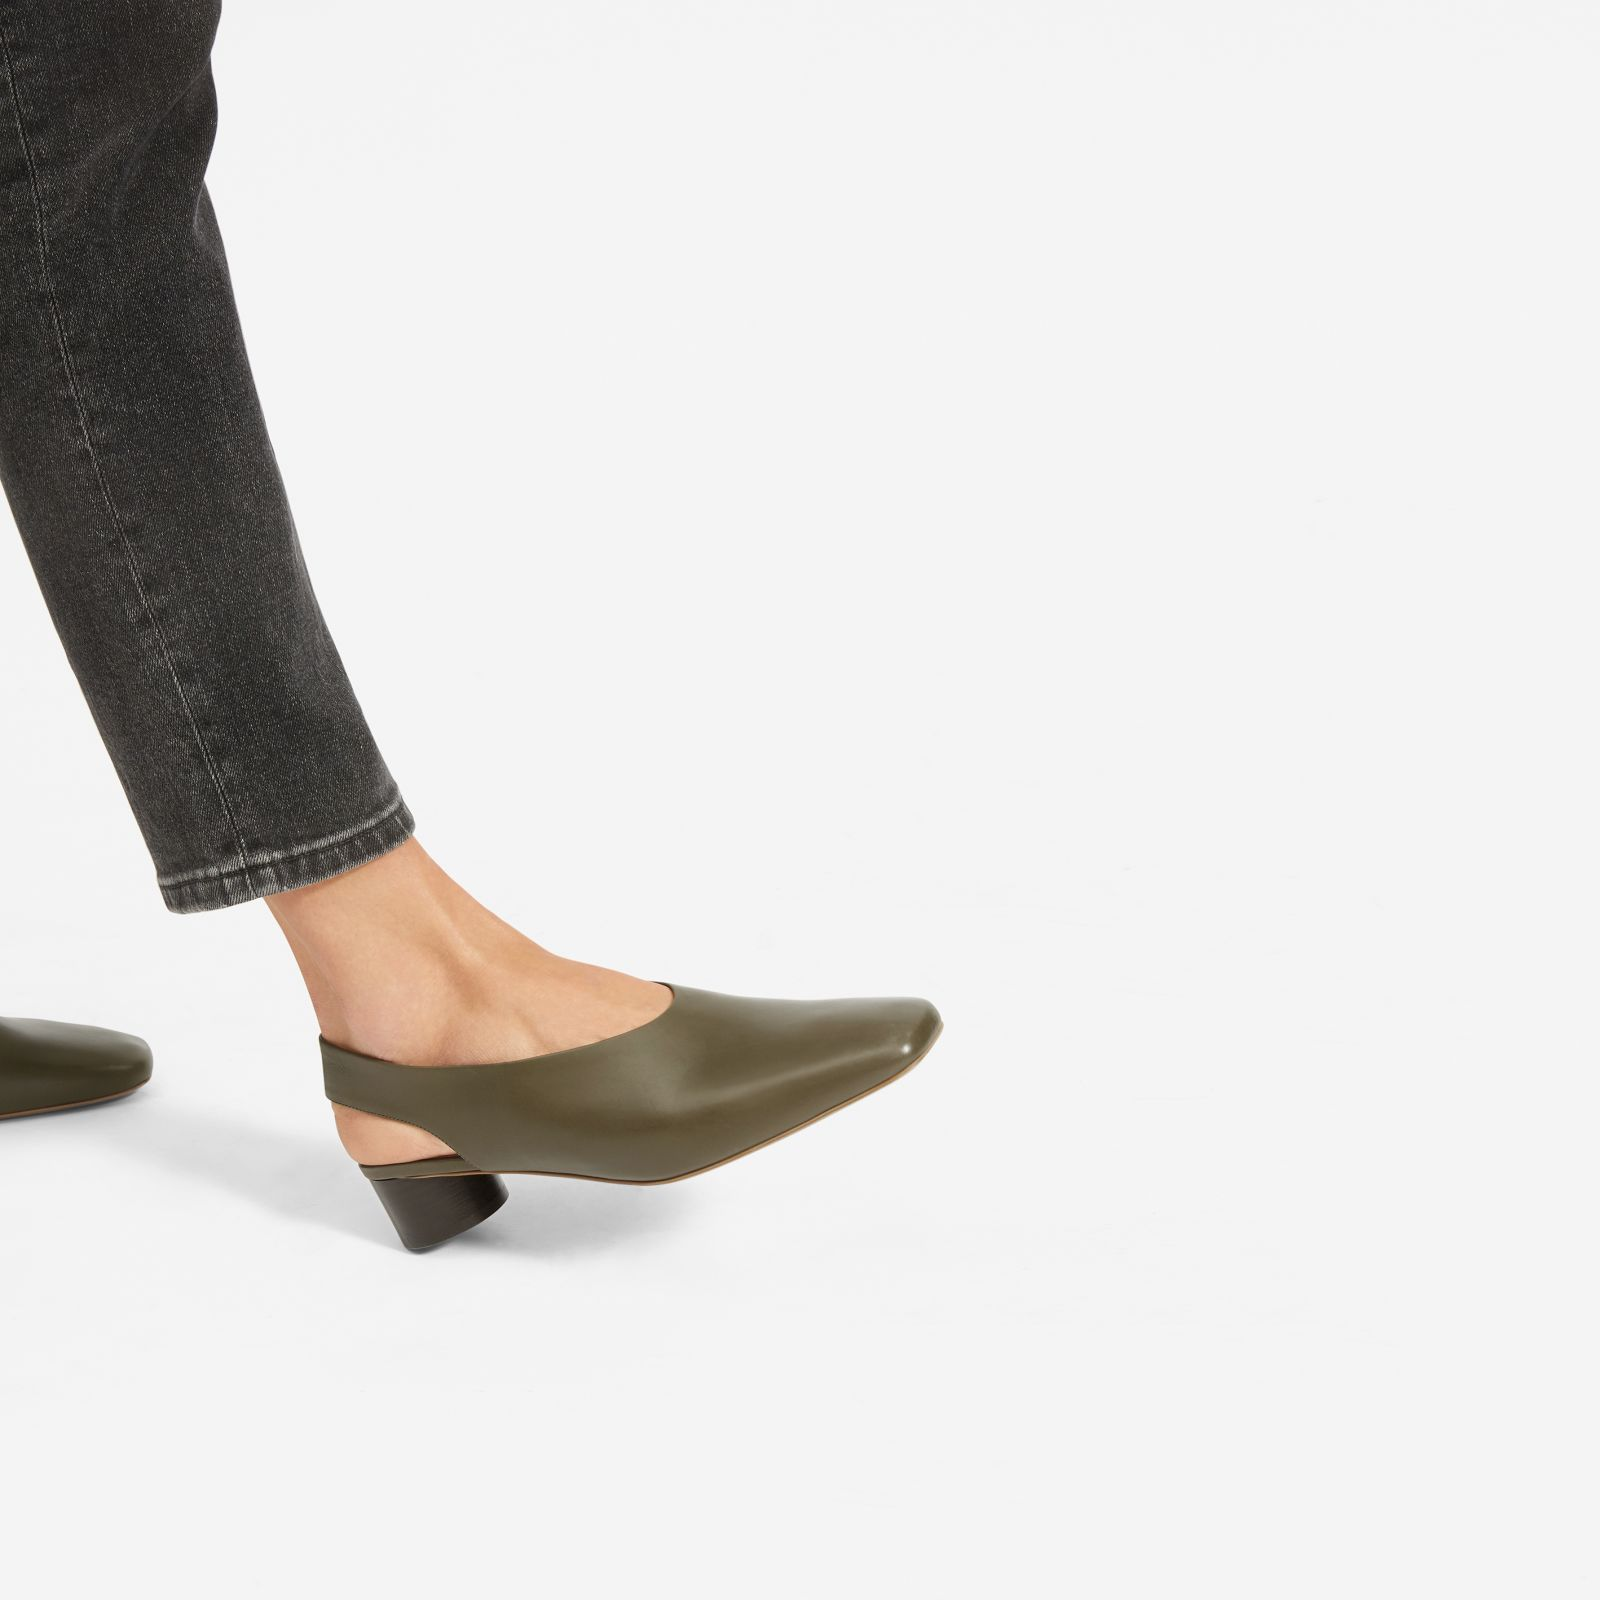 b12dcc77887d3 Everlane The Square Toe Slingback in 2019 | Products | Pump shoes ...